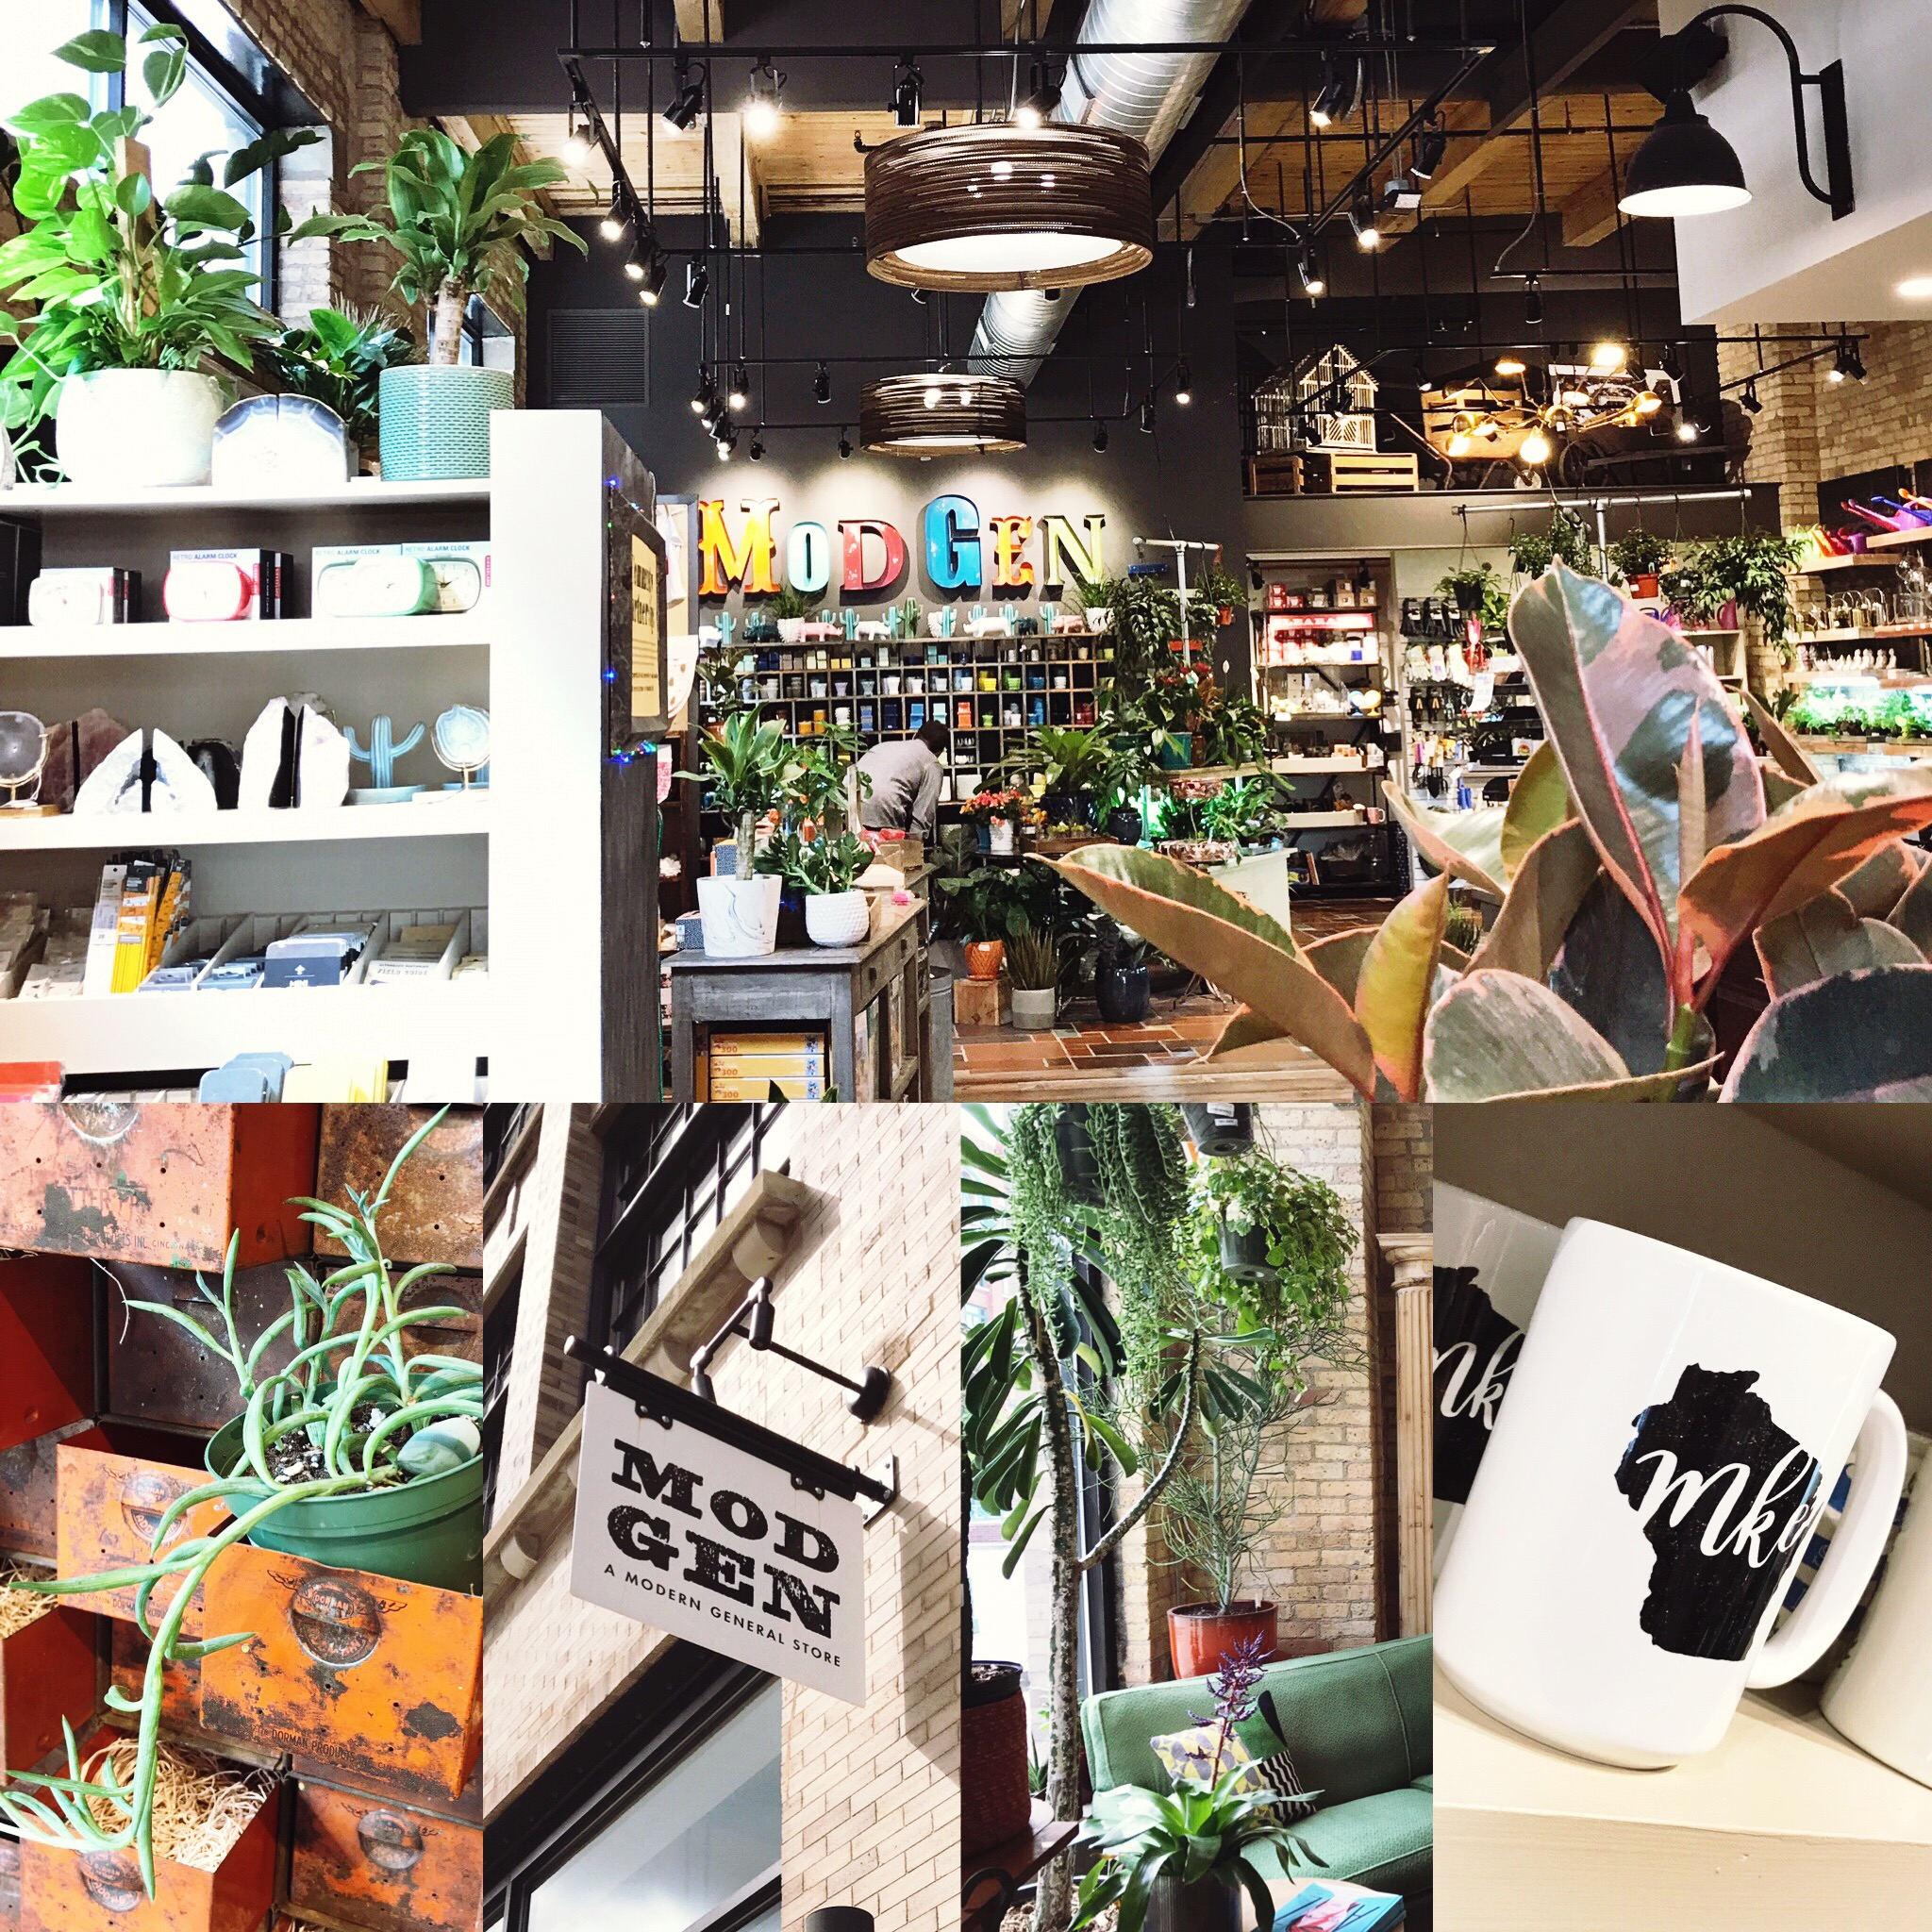 Mod Gen MKE - If you want something for the whole family, why not try Mod Gen? Short for Modern General Store, they carry a mix of the nostalgic and the new, handmade goods and tons of plants to choose from.